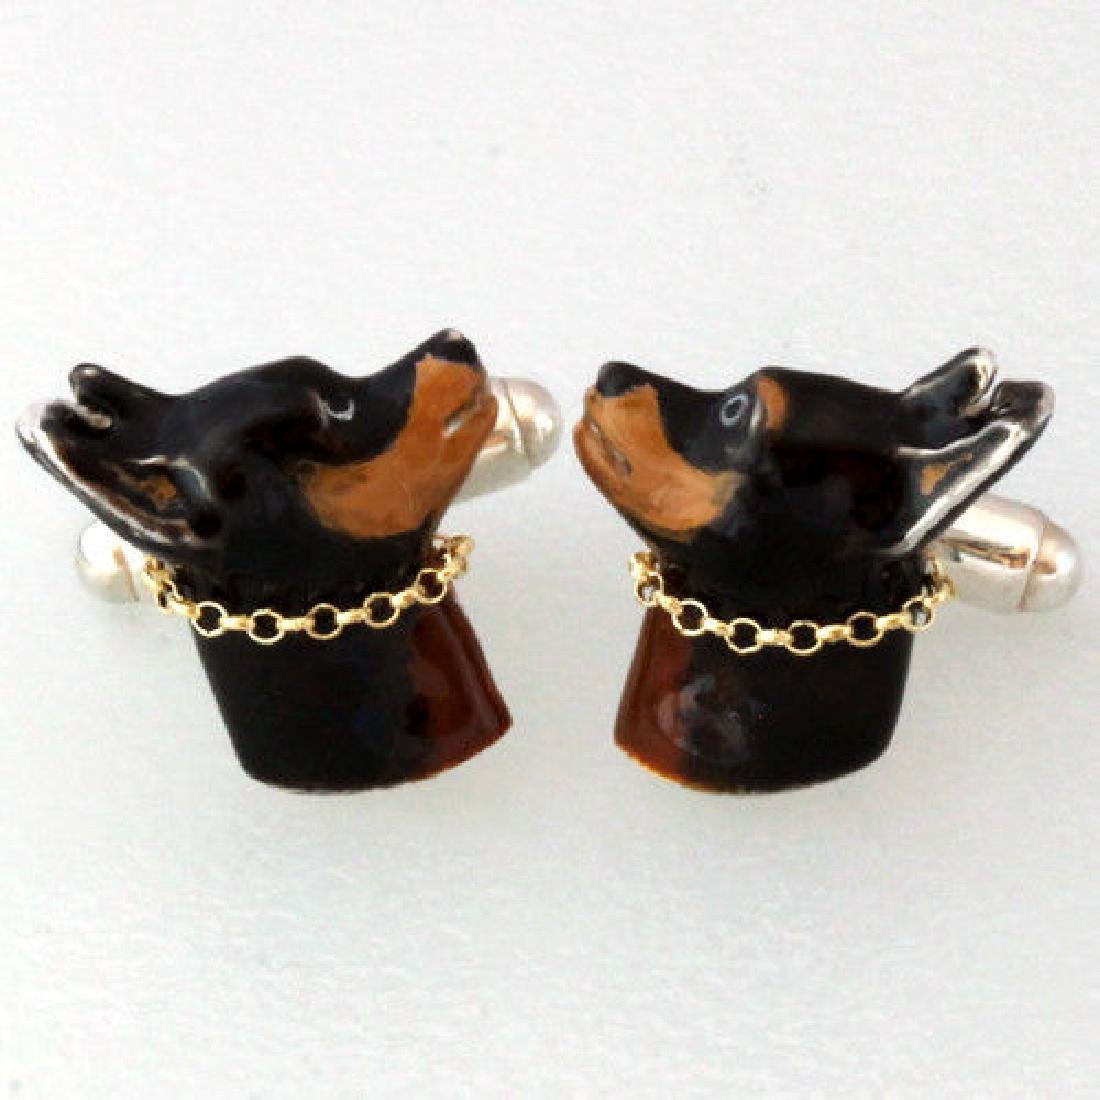 DOG Pinscher Chihuahua Cufflinks Sterling Silver 925